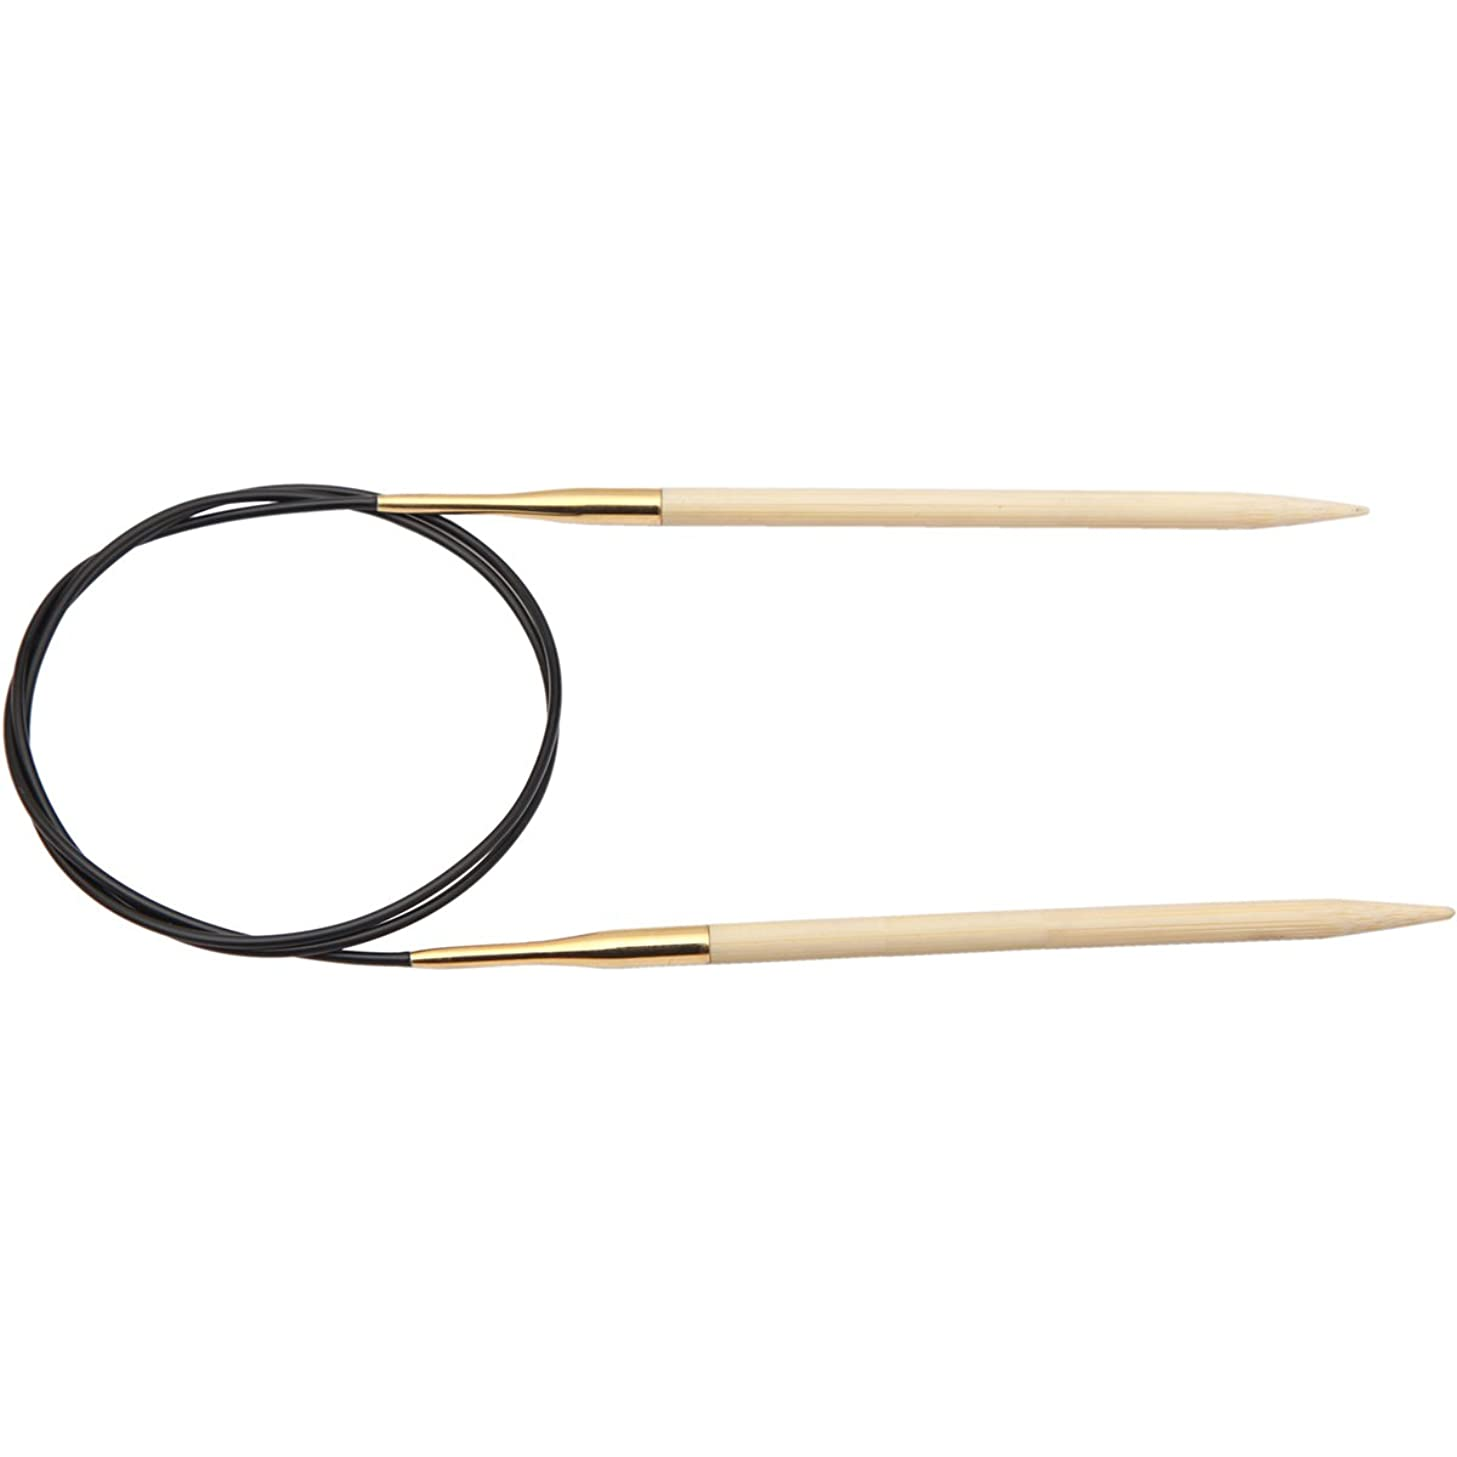 Knitter's Pride 10.75/7mm Bamboo Fixed Circular Needles, 16